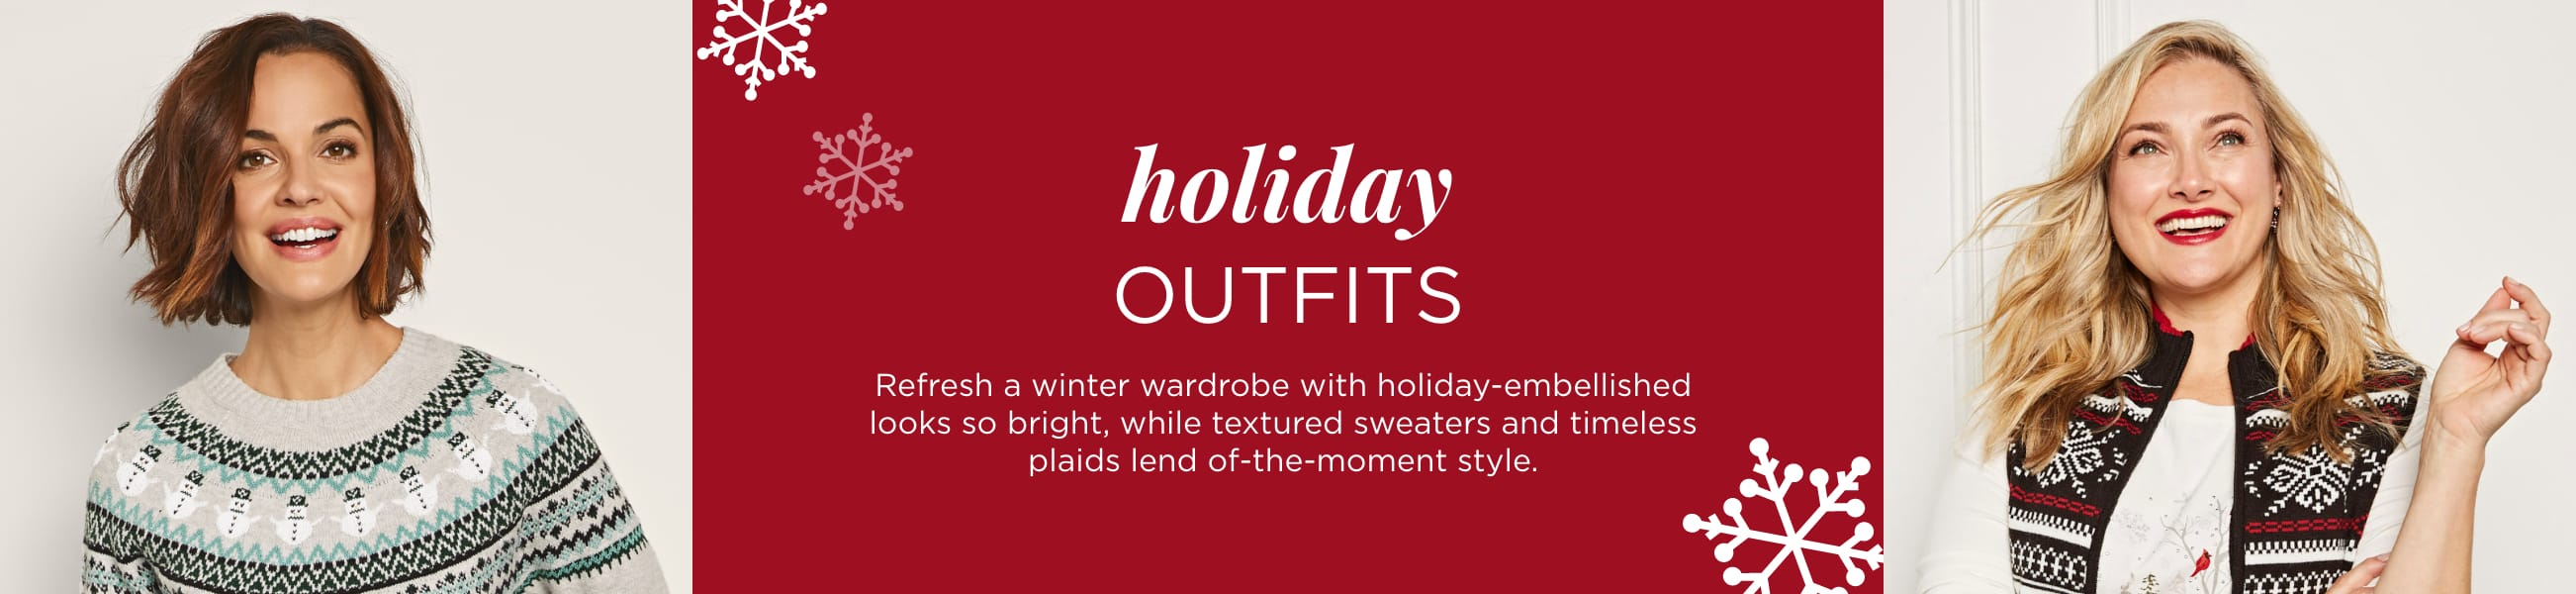 Holiday Outfits. Refresh a winter wardrobe with holiday-embellished looks so bright, while textured sweaters and timeless plaids lend of-the-moment style..